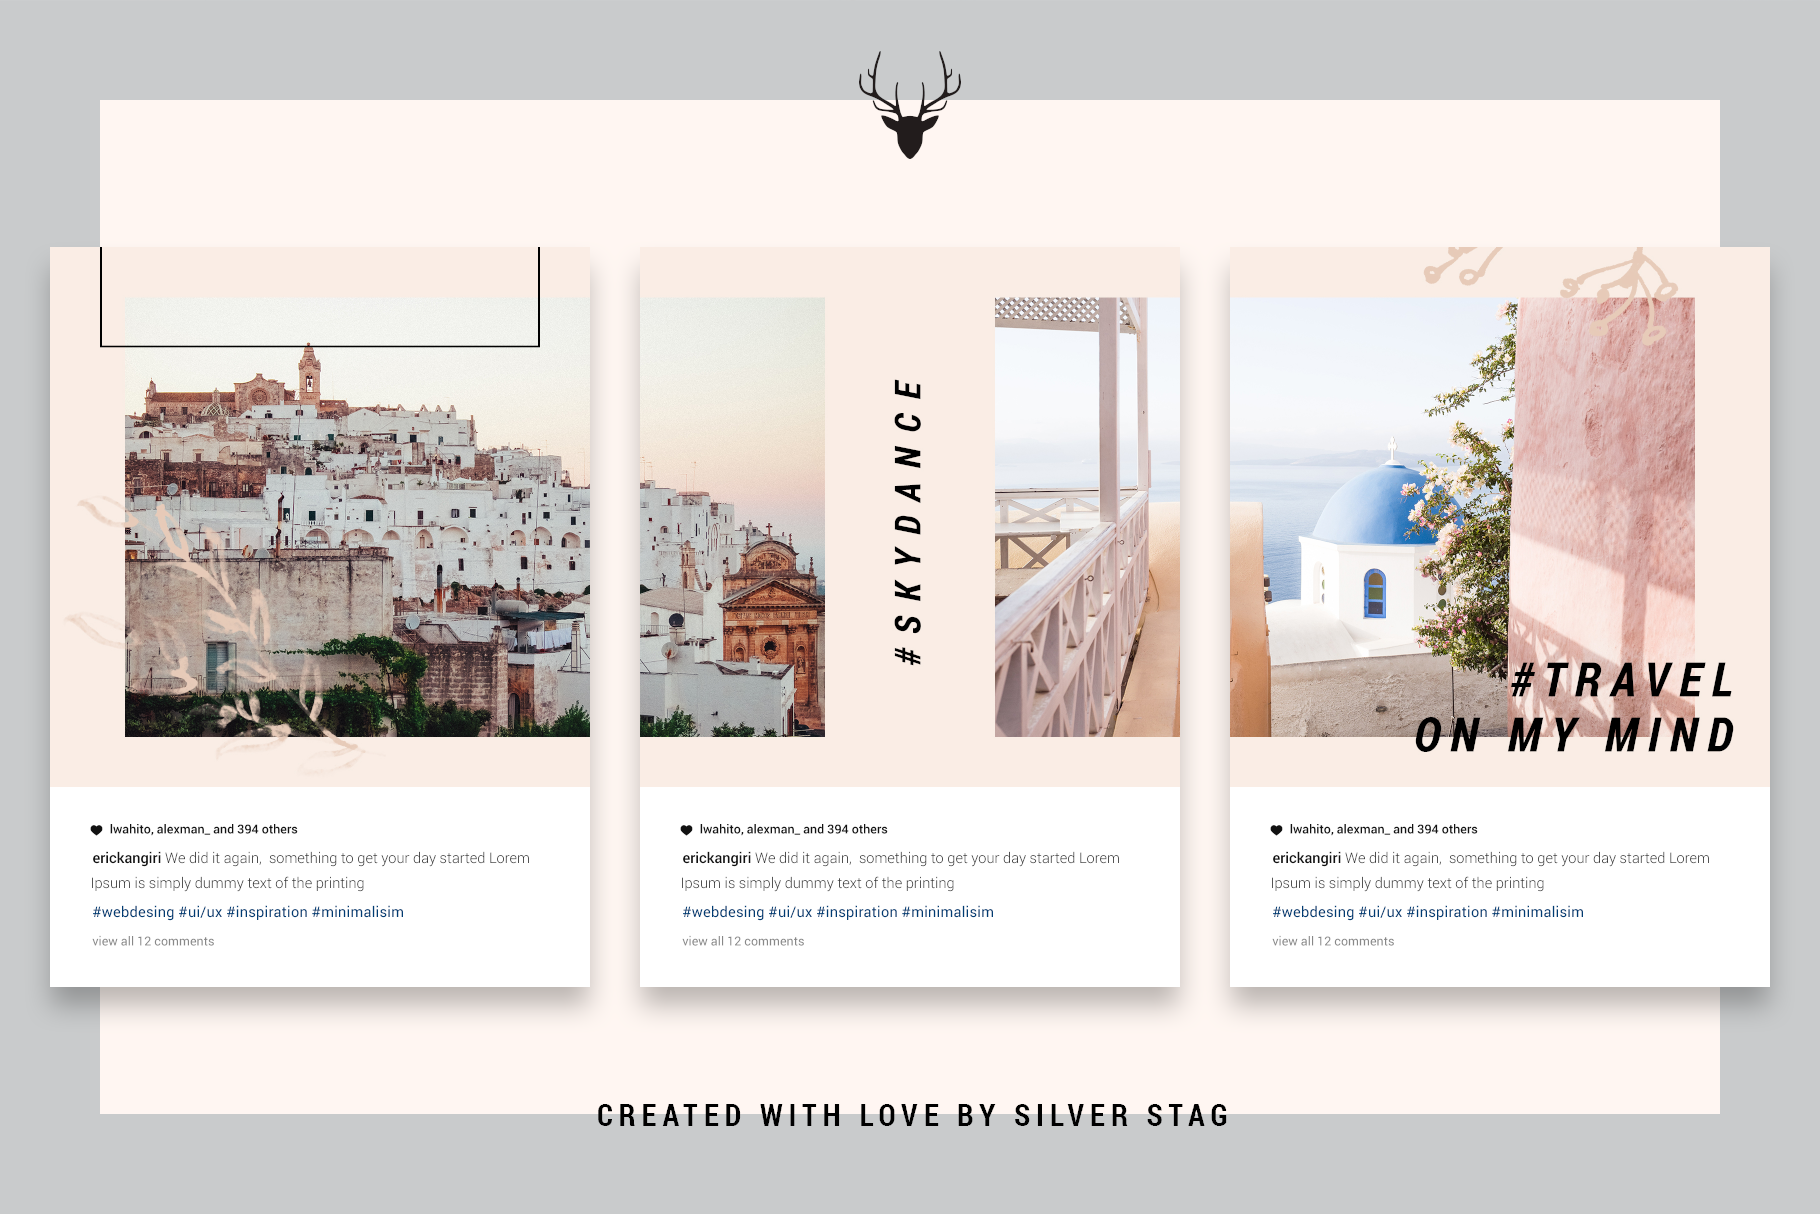 InstaGrid 5.0 - Creative & Modern Instagram Puzzle Template example image 11